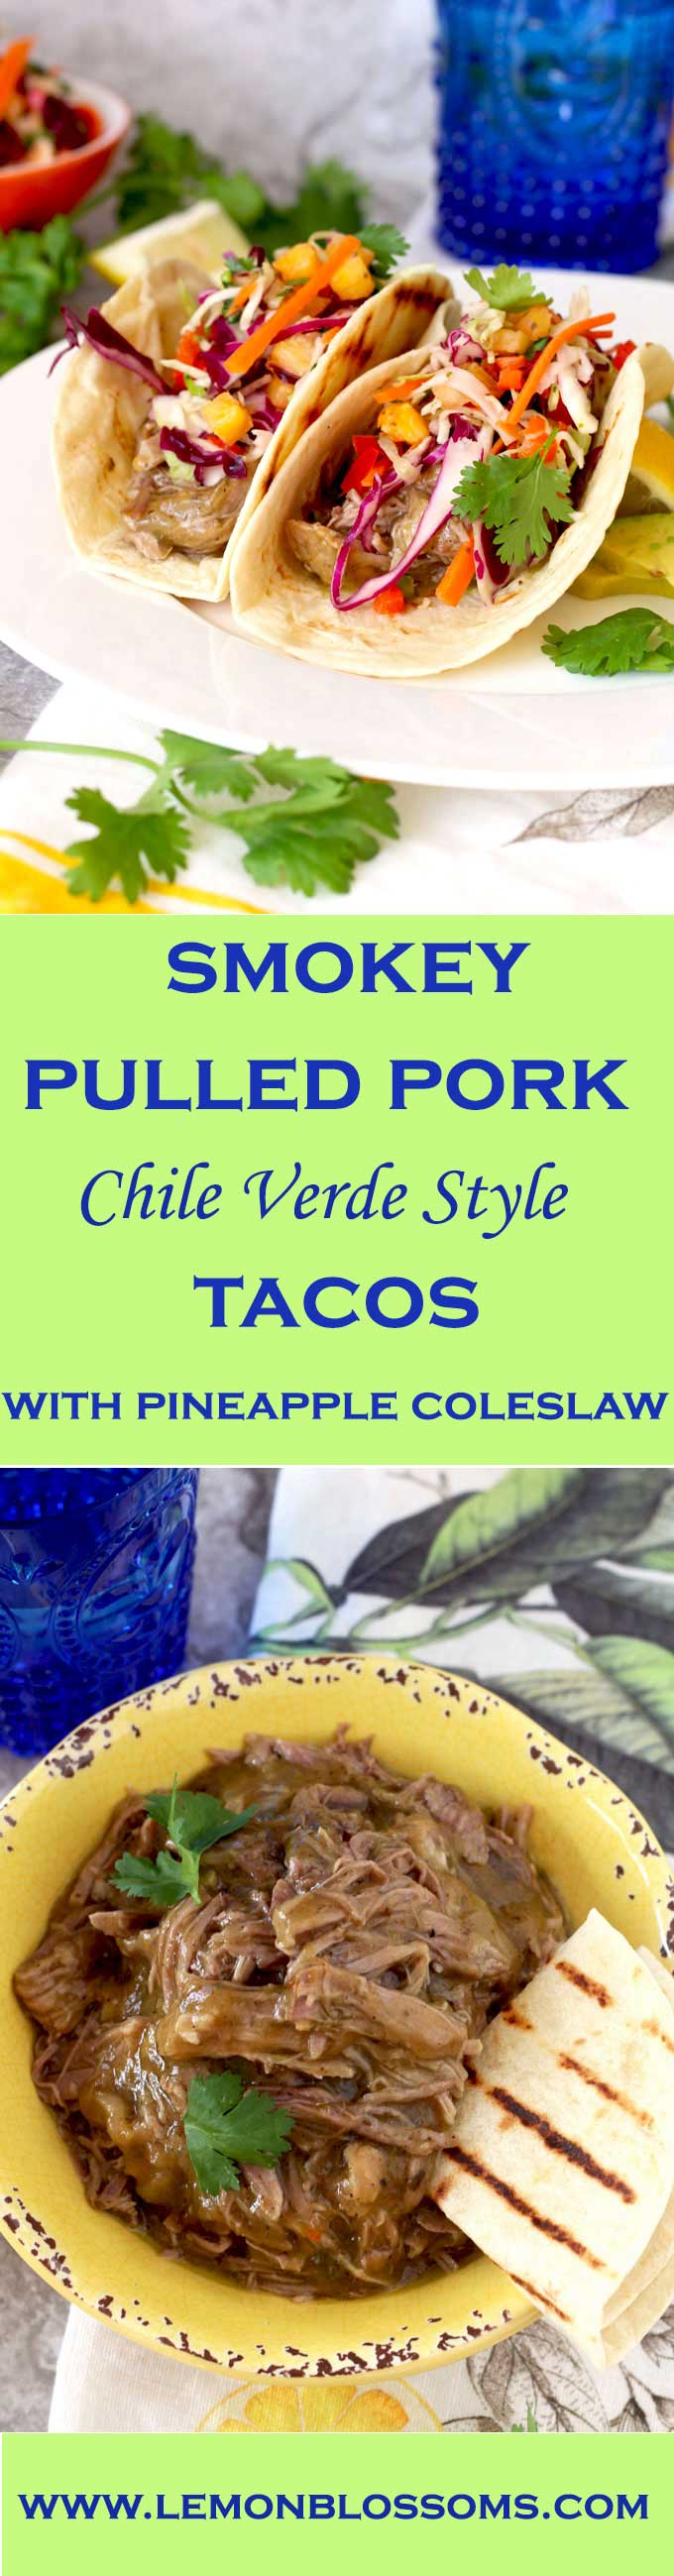 Smoky Pulled Pork Chile Verde Style Tacos with Pineapple Cole Slaw Tender and full of flavor Pulled Pork Chile Verde Style is wrapped in a tortilla and top with a fresh and crisp slaw that has just a hint of sweetness from fresh pineapple!